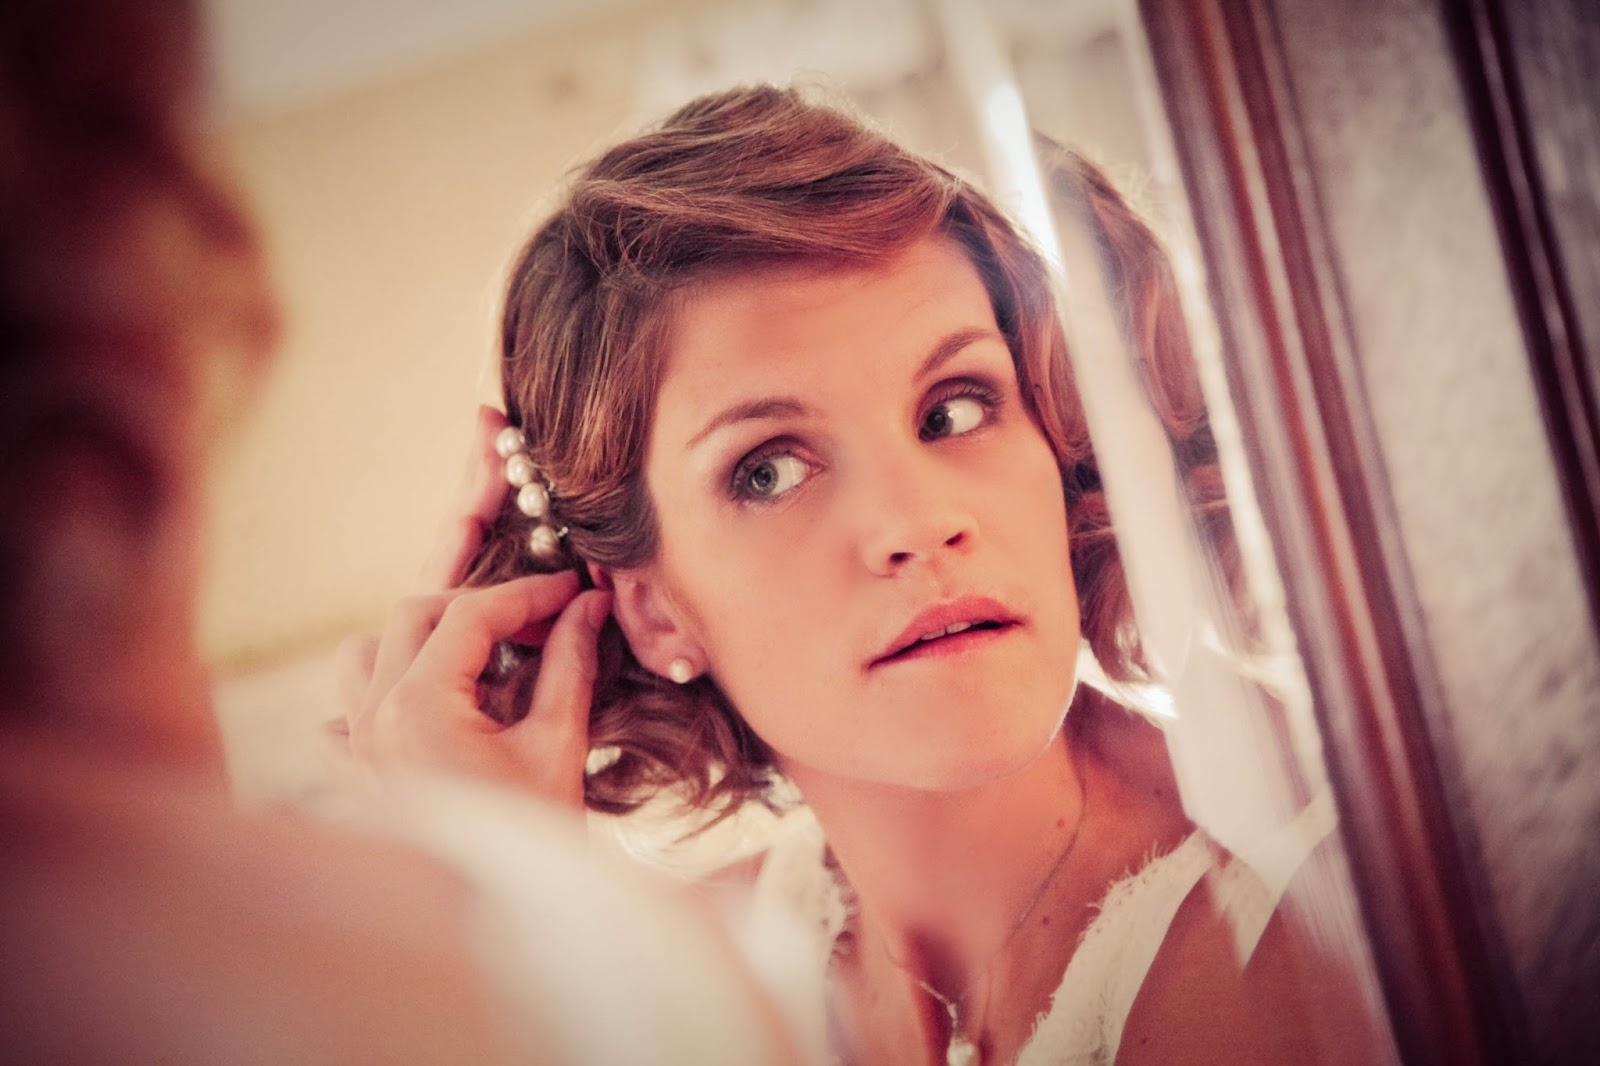 Bride getting prepared in front of a mirror